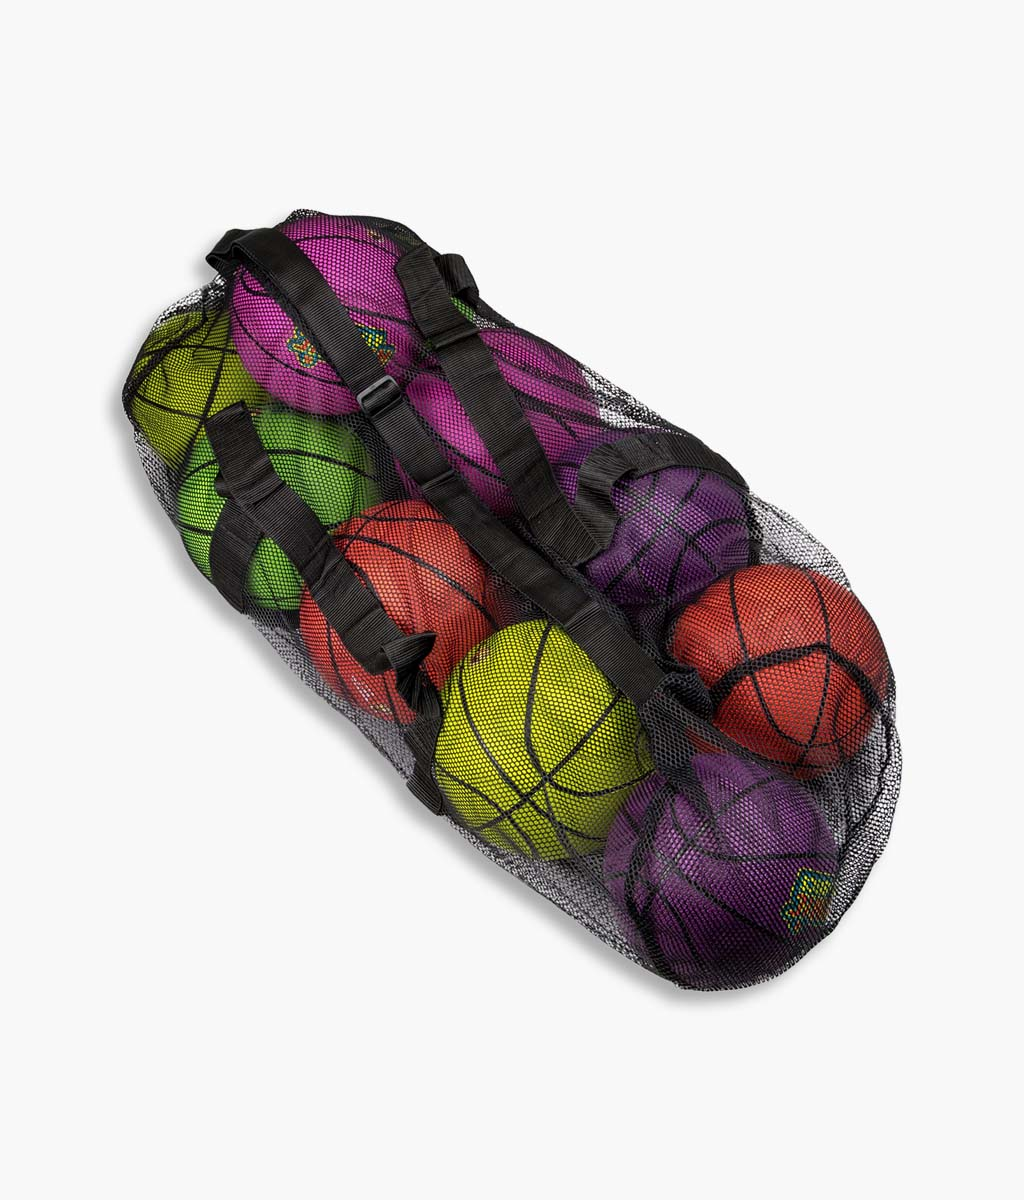 Mesh Sports Ball Bag with Adjustable Shoulder Strap